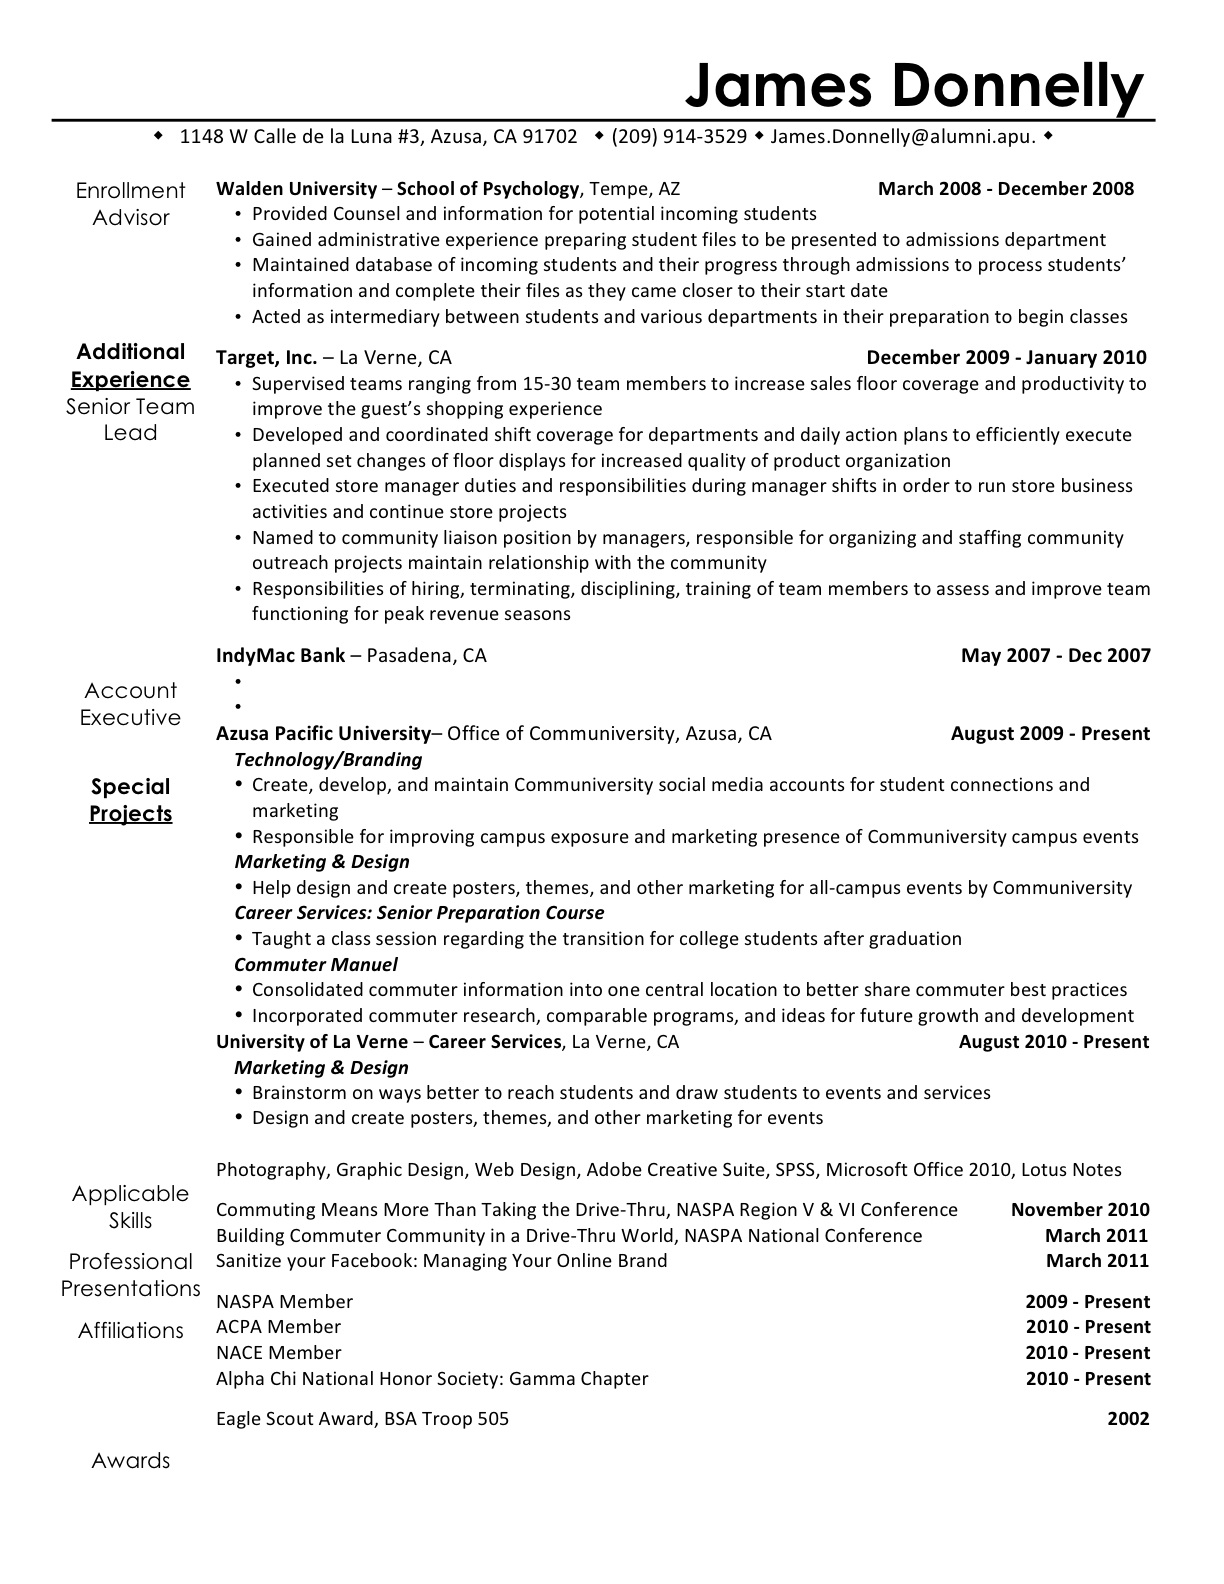 Resume For New Career Akbaeenw